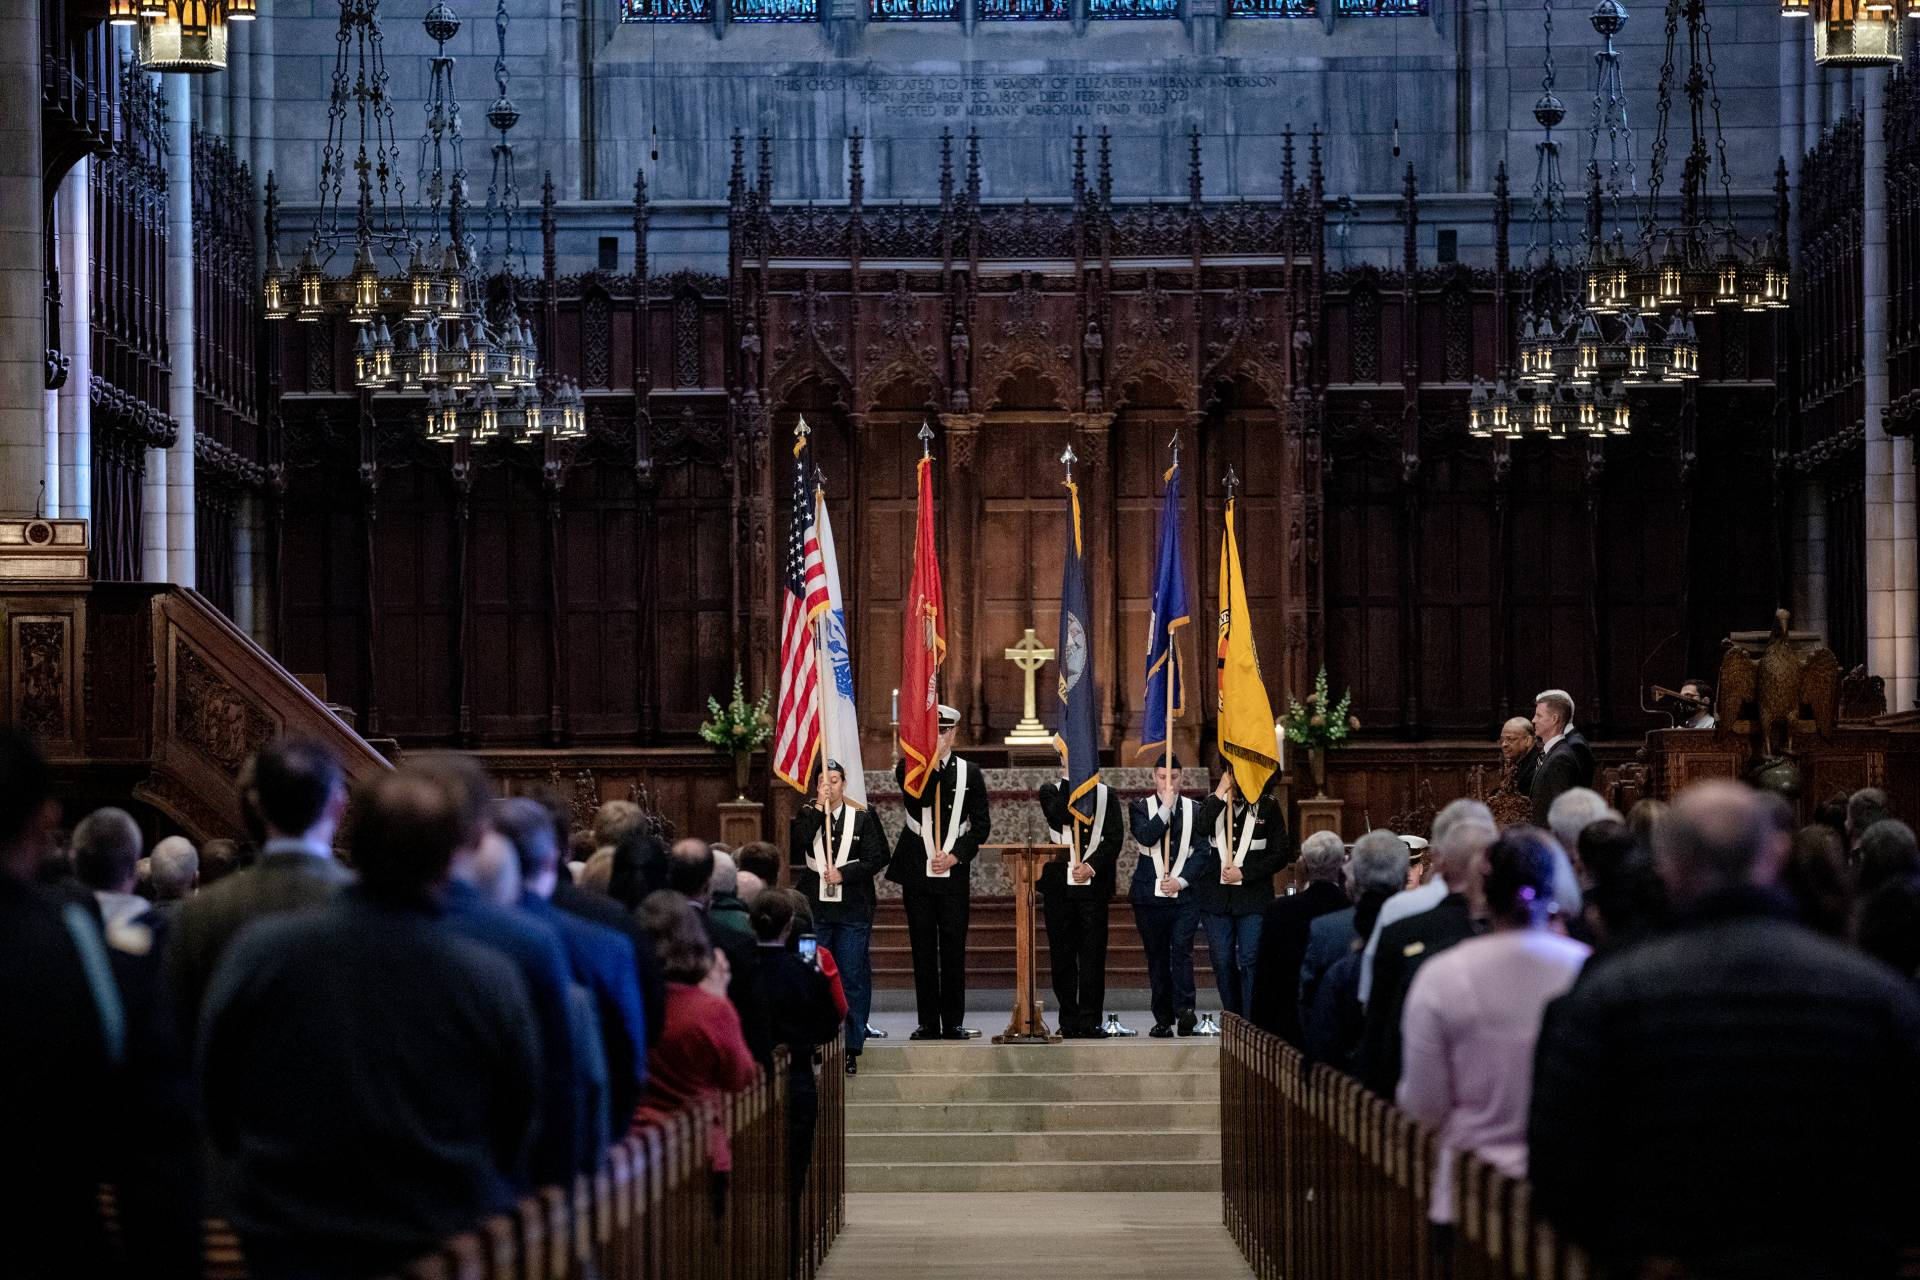 ROTC ceremony in the Princeton chapel